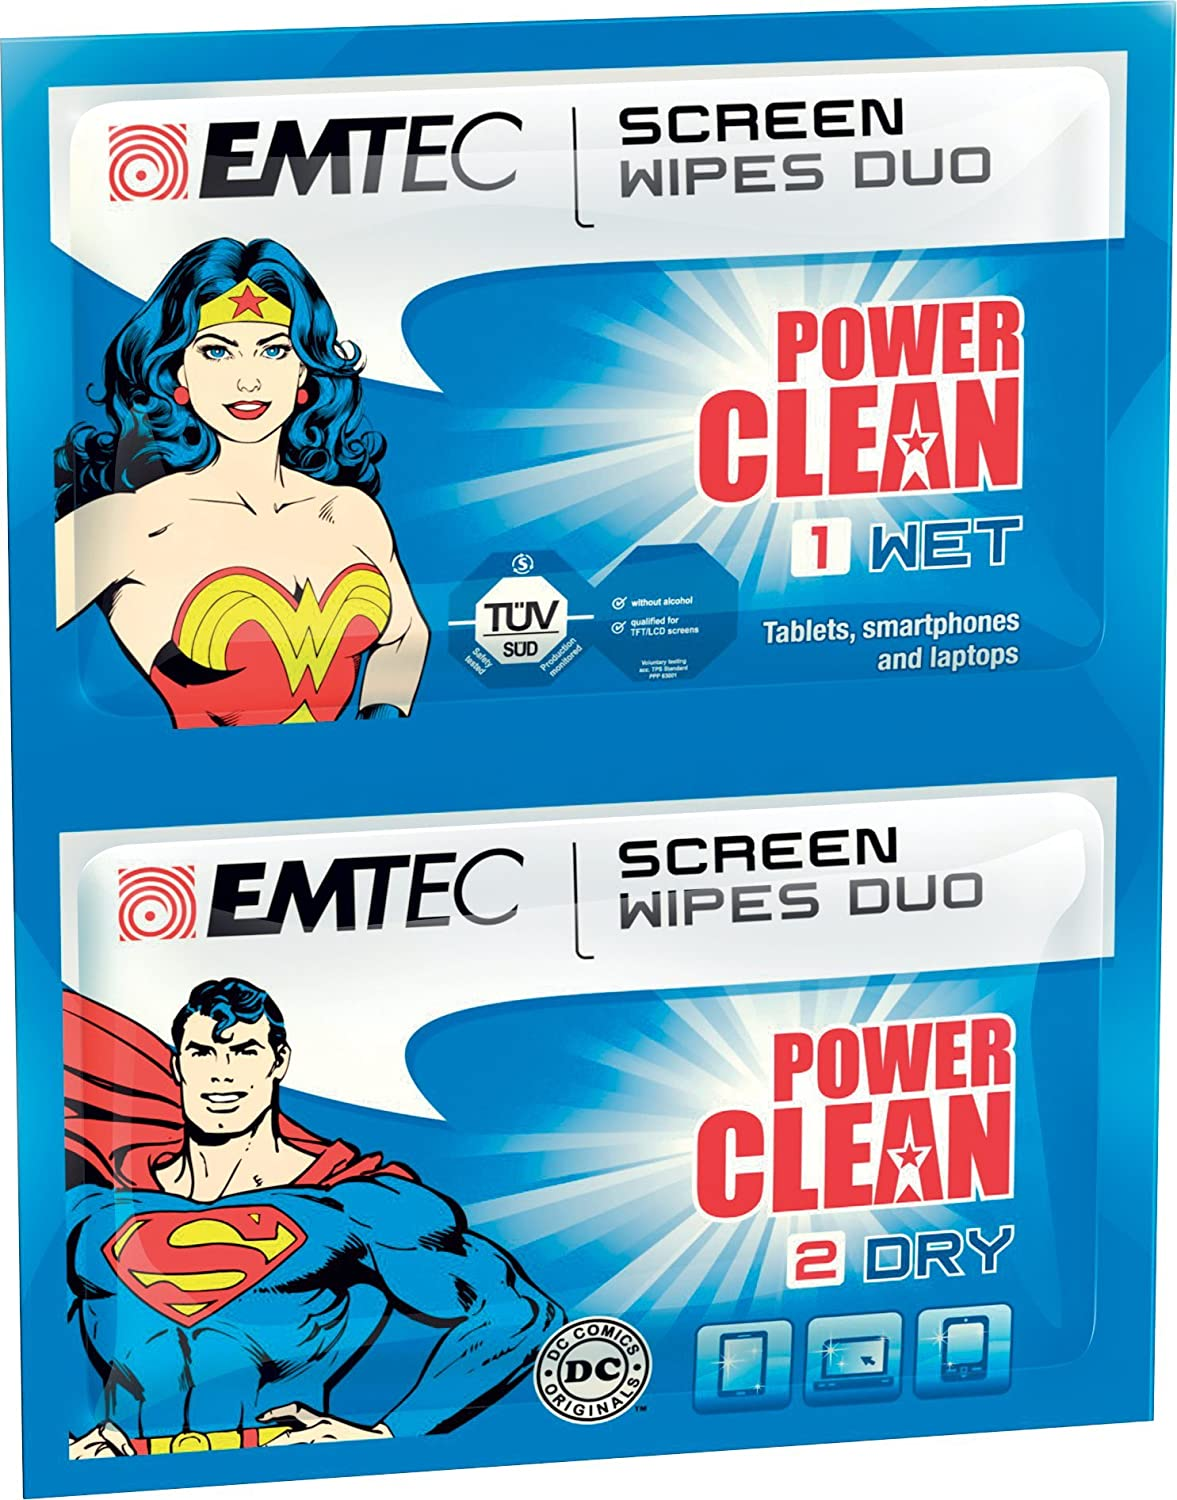 EMTEC Power Clean Wet and Dry Wipes Duo